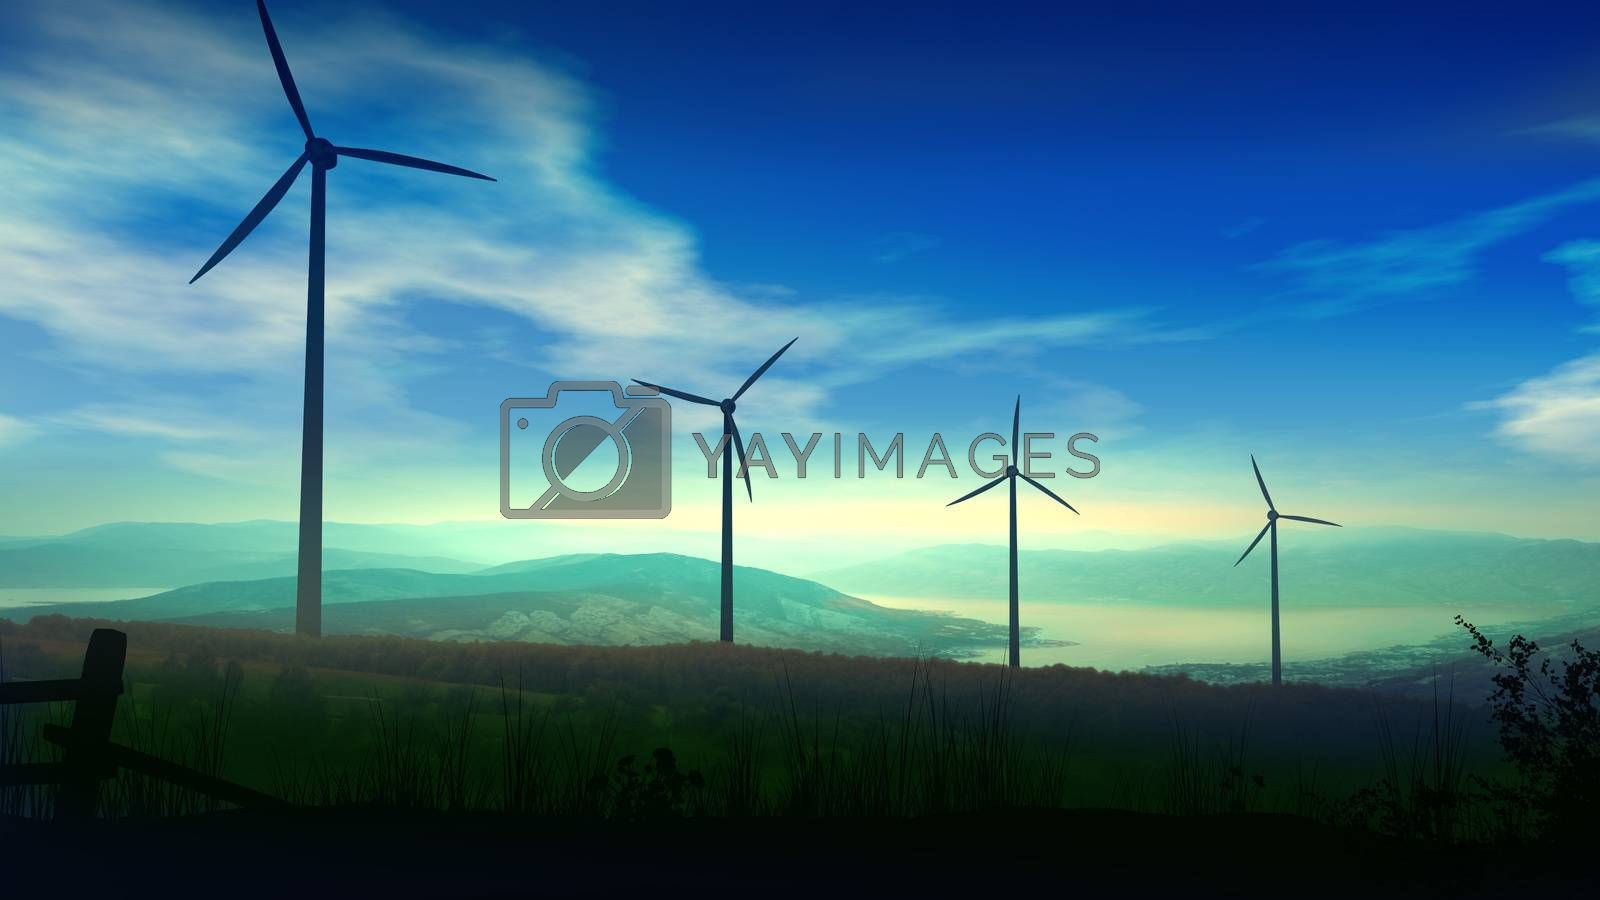 Silhouettes of wind power plants towering against the background of a beautiful landscape.